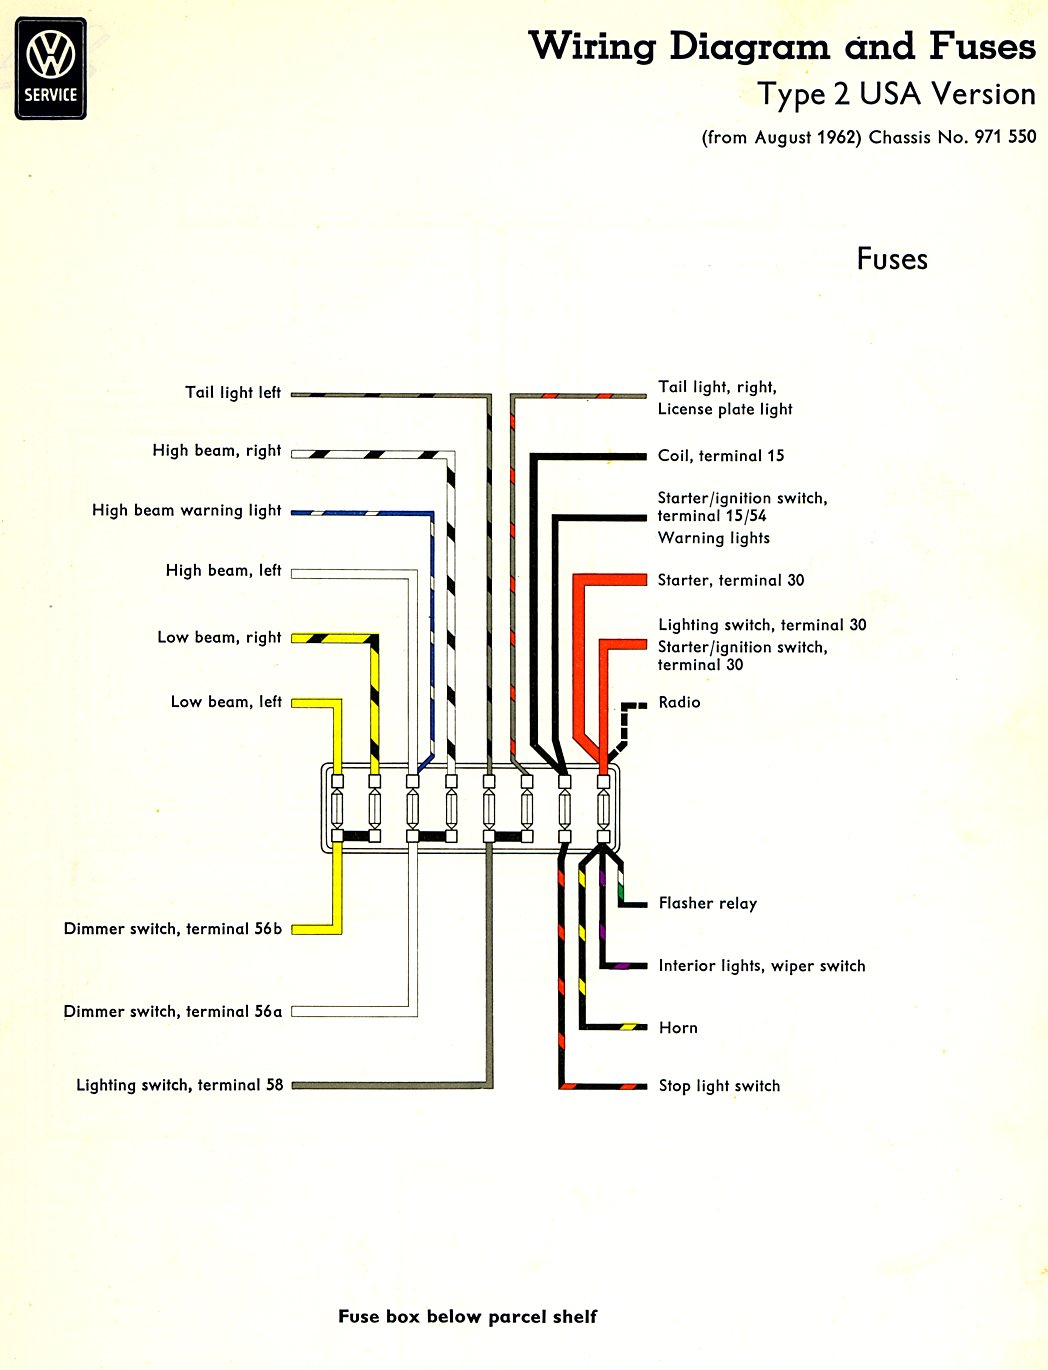 Type 2 Wiring Diagrams Circuit Builder Fuse Box Diagram